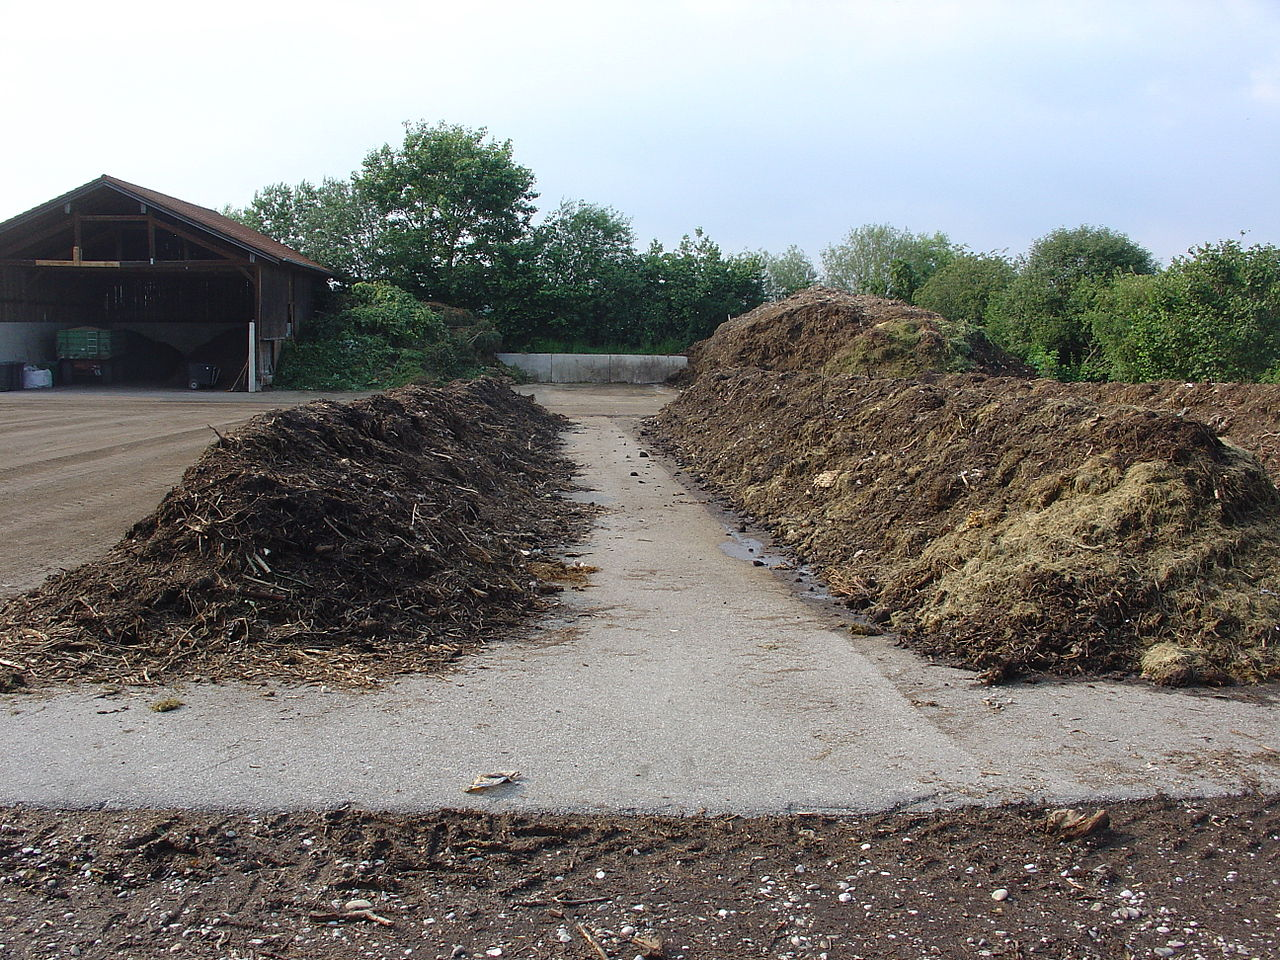 Compost site Germany